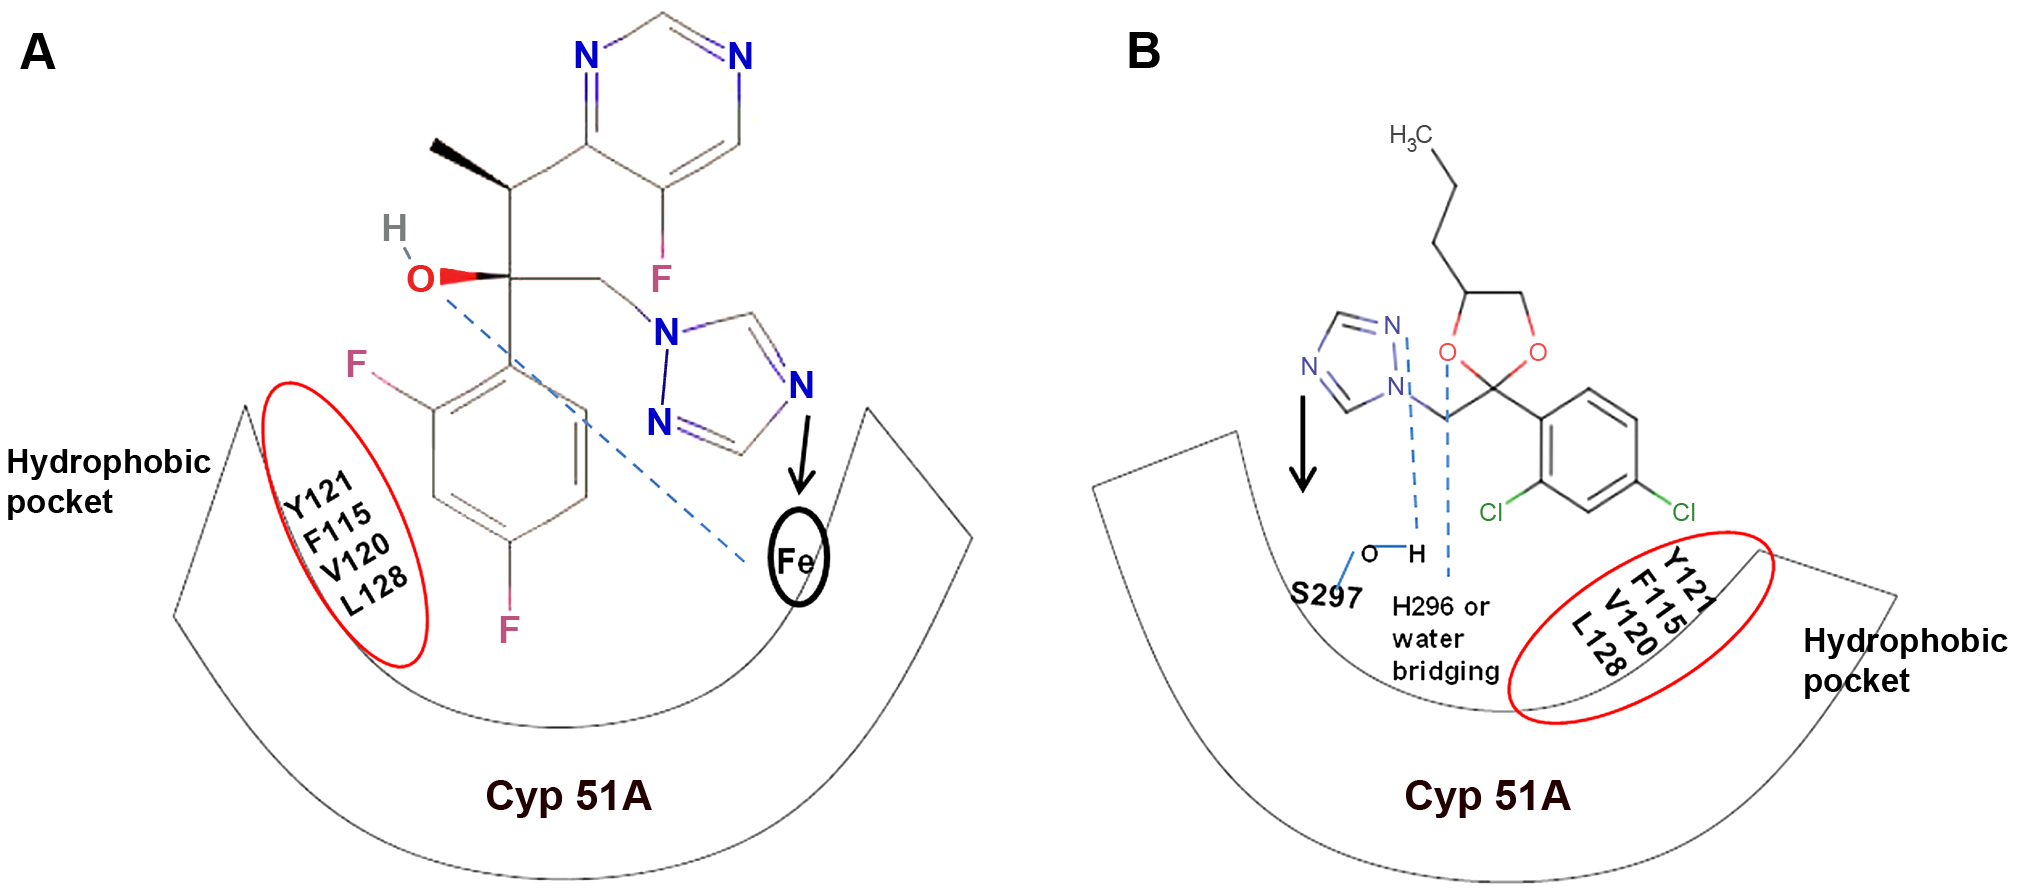 Diagrammatic representation of similar structural binding mode of medical triazoles and triazole fungicides to <i>cyp</i>51A of wild-type <i>A. fumigatus</i>.